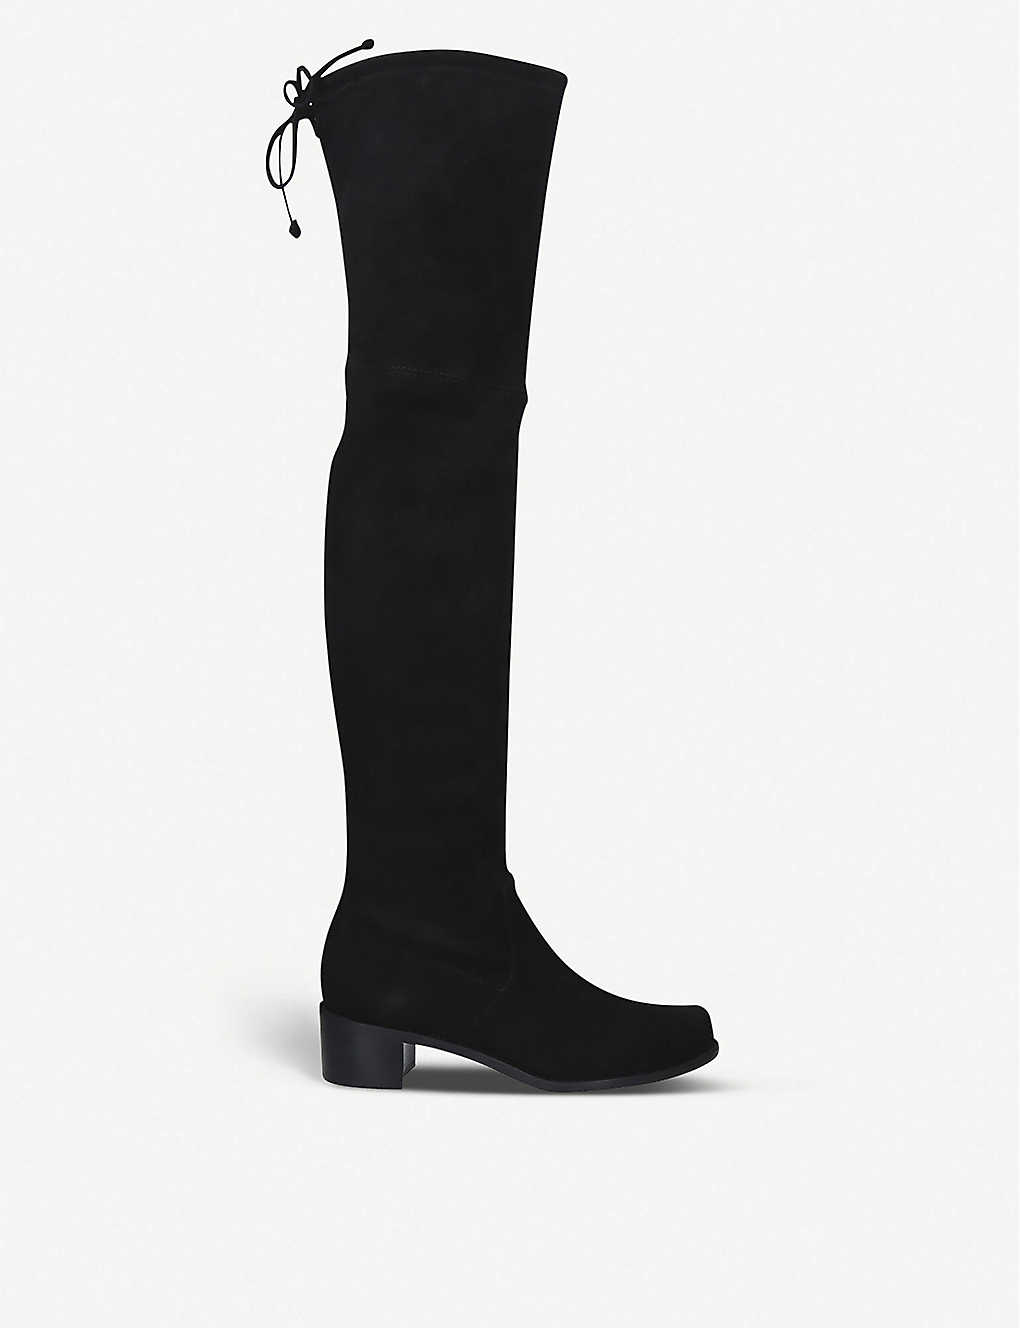 STUART WEITZMAN: Midland over-the-knee suede boots